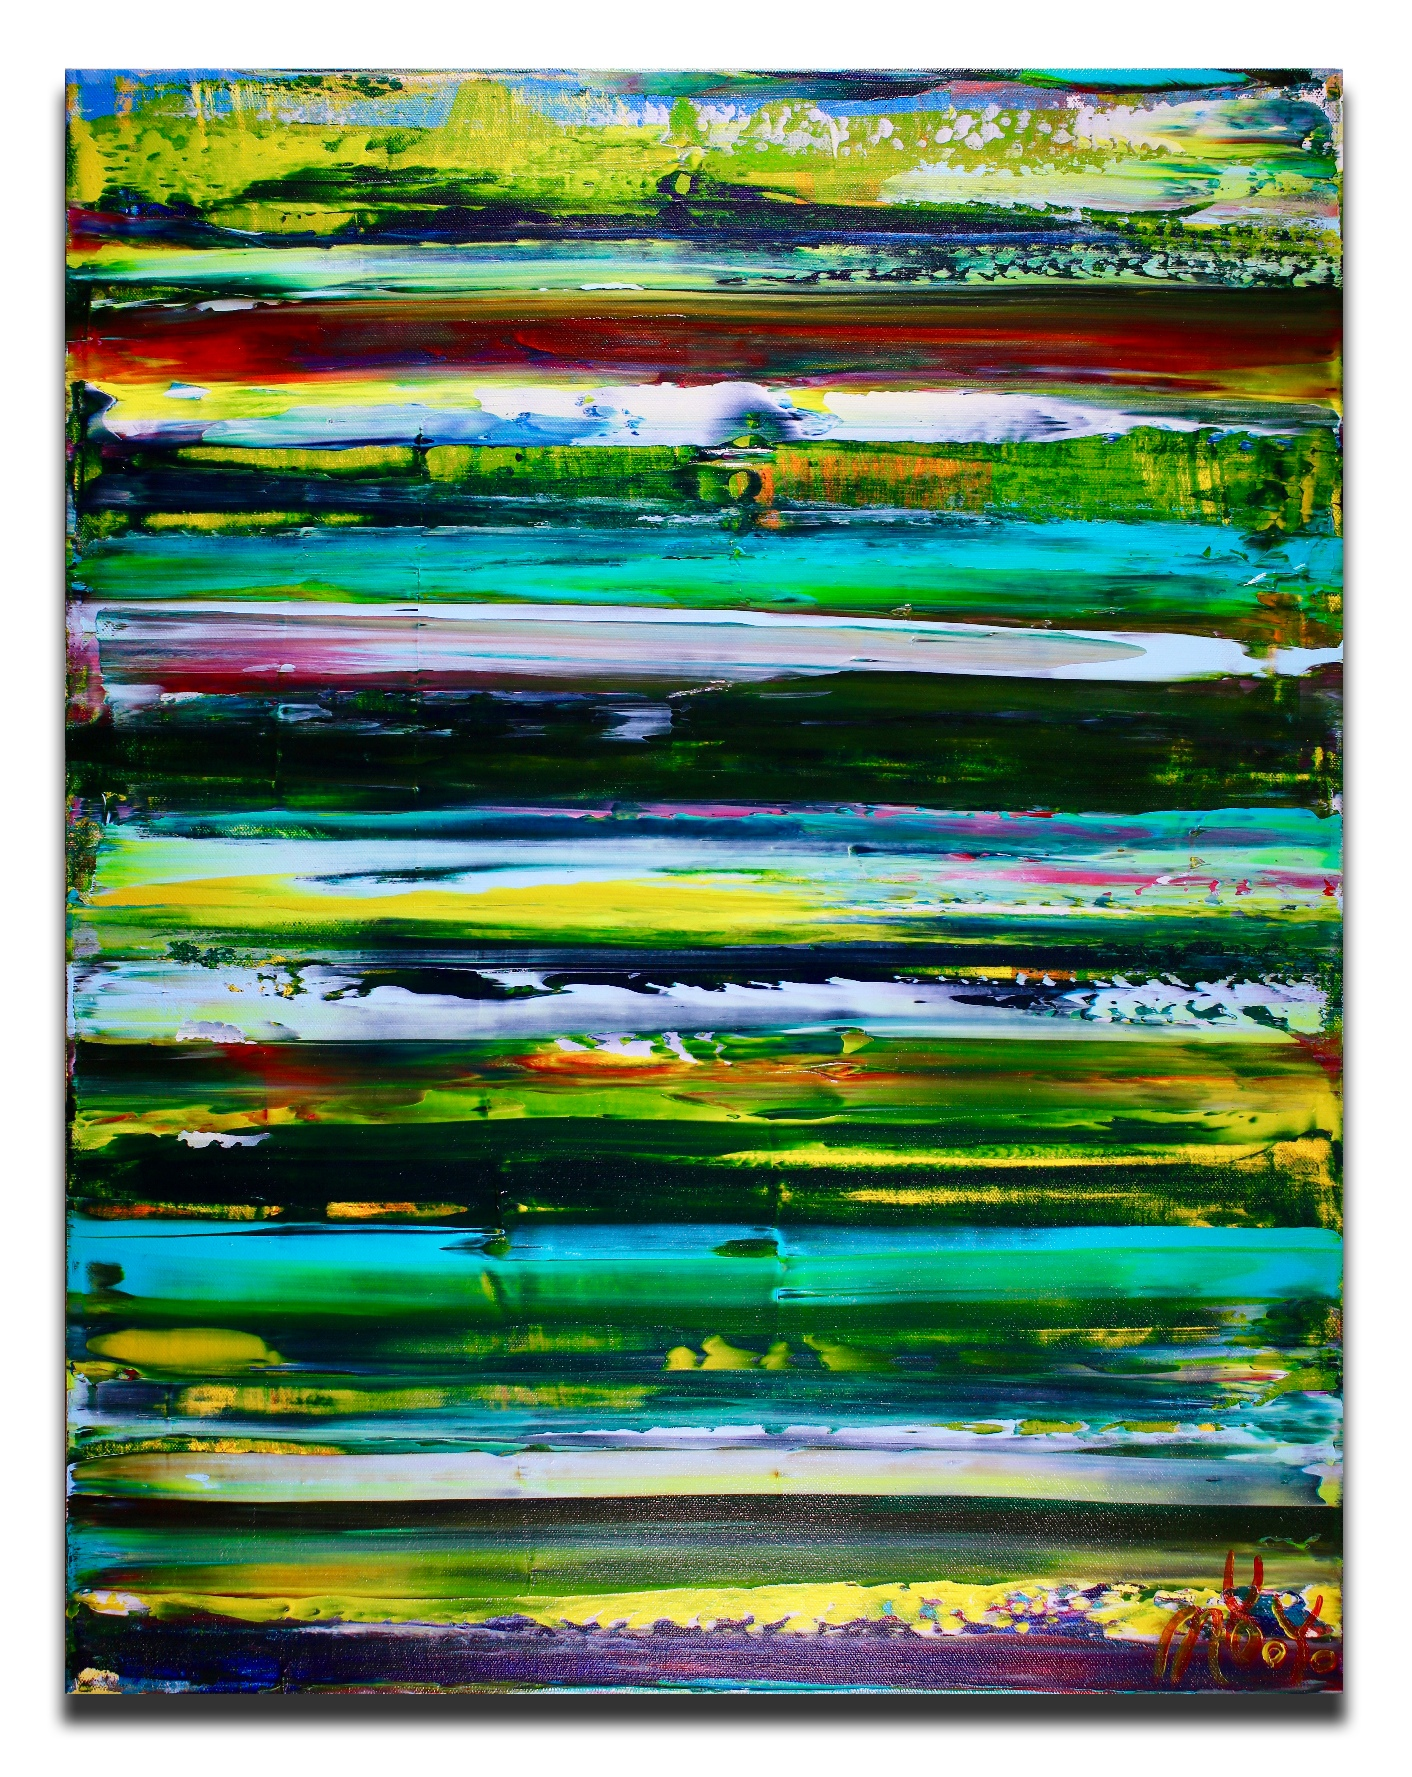 Forest Intrusion (2018) Abstract Acrylic painting by Nestor Toro